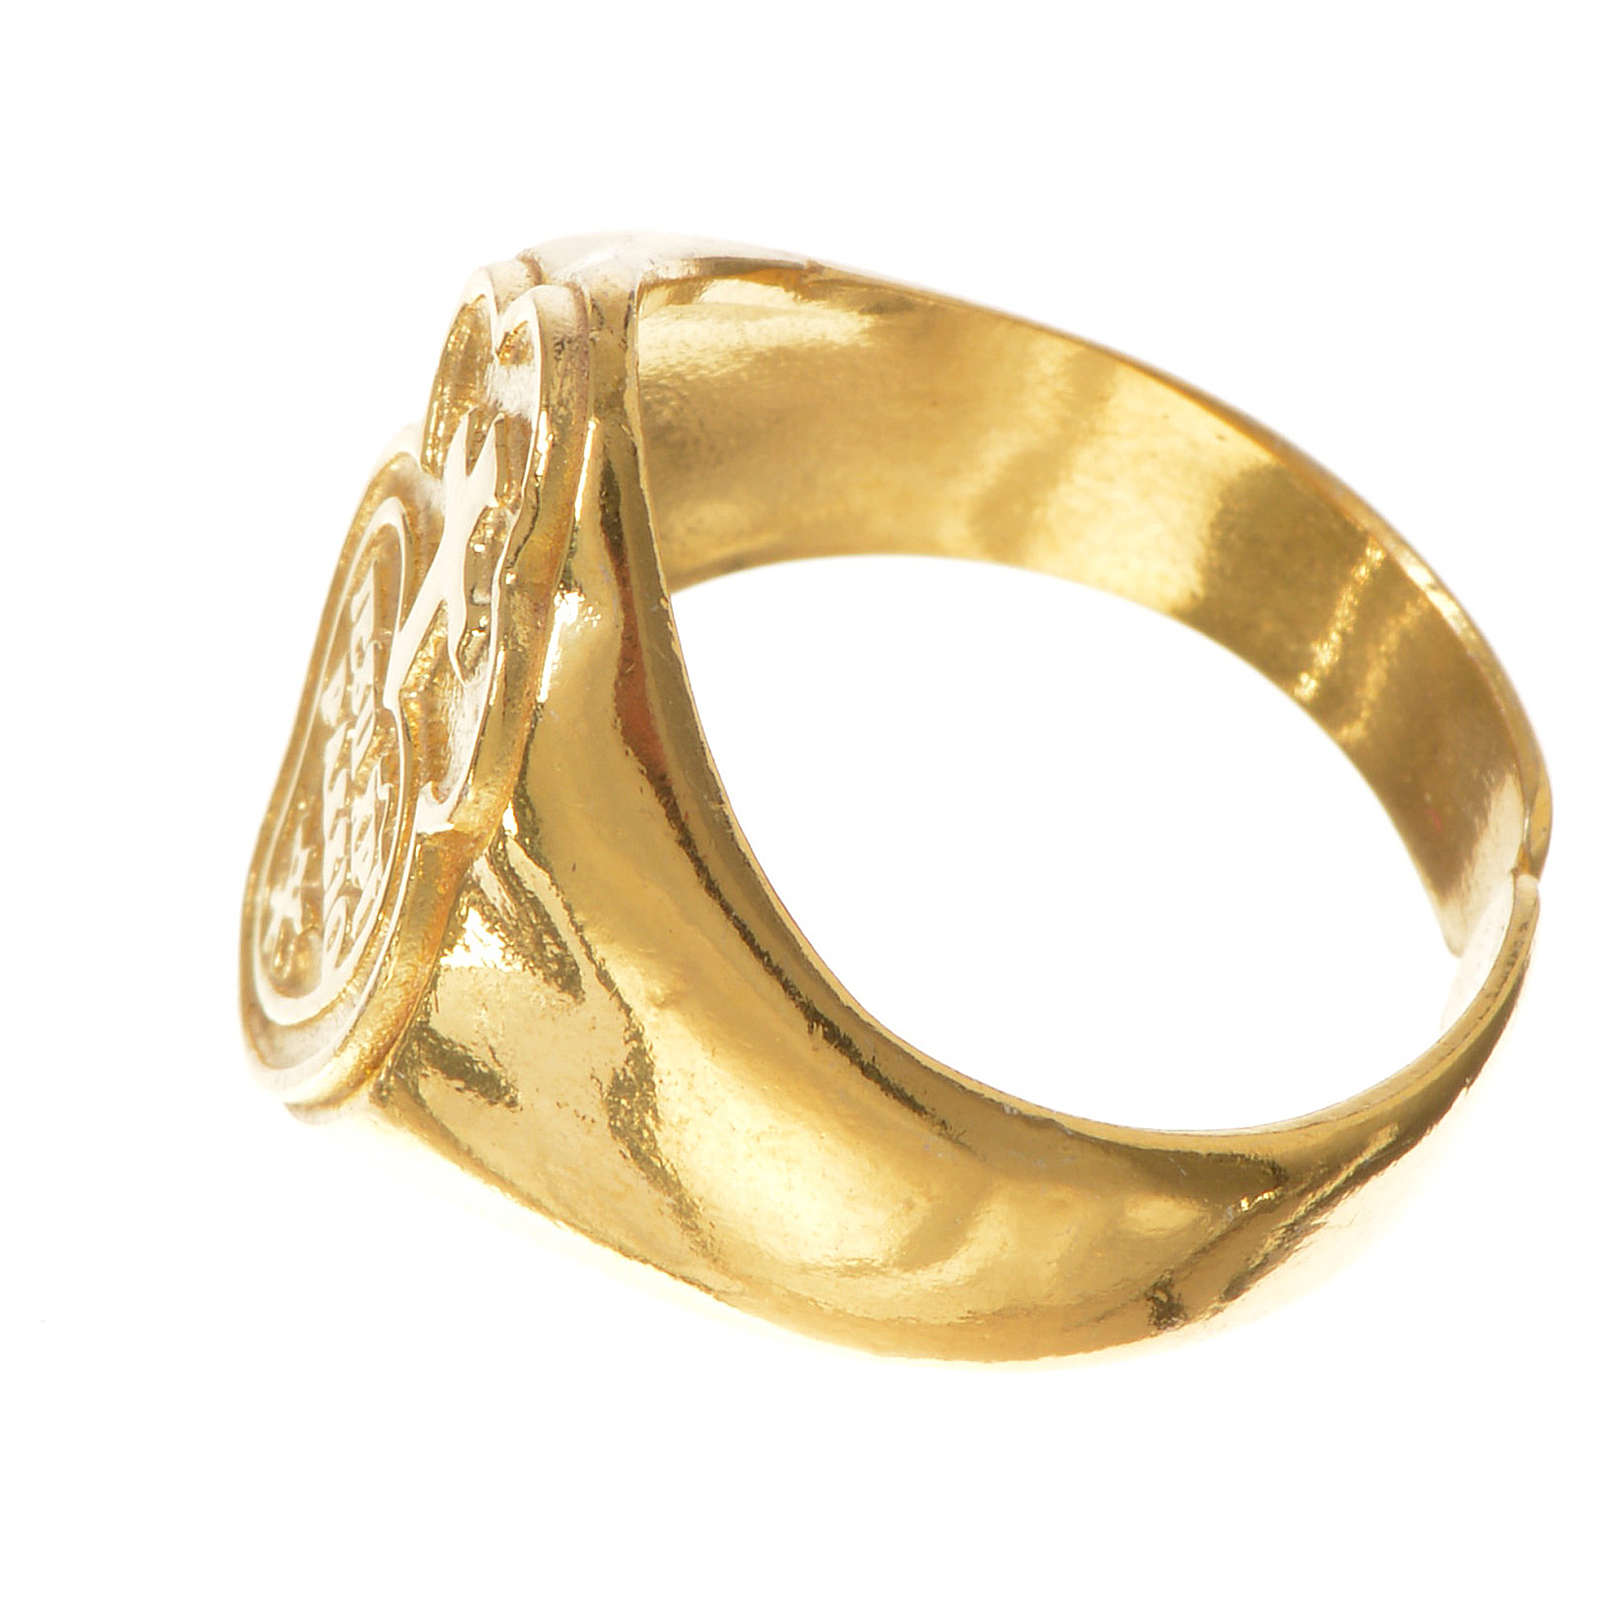 Bishop ring gold-plated silver 925, Passionists 3